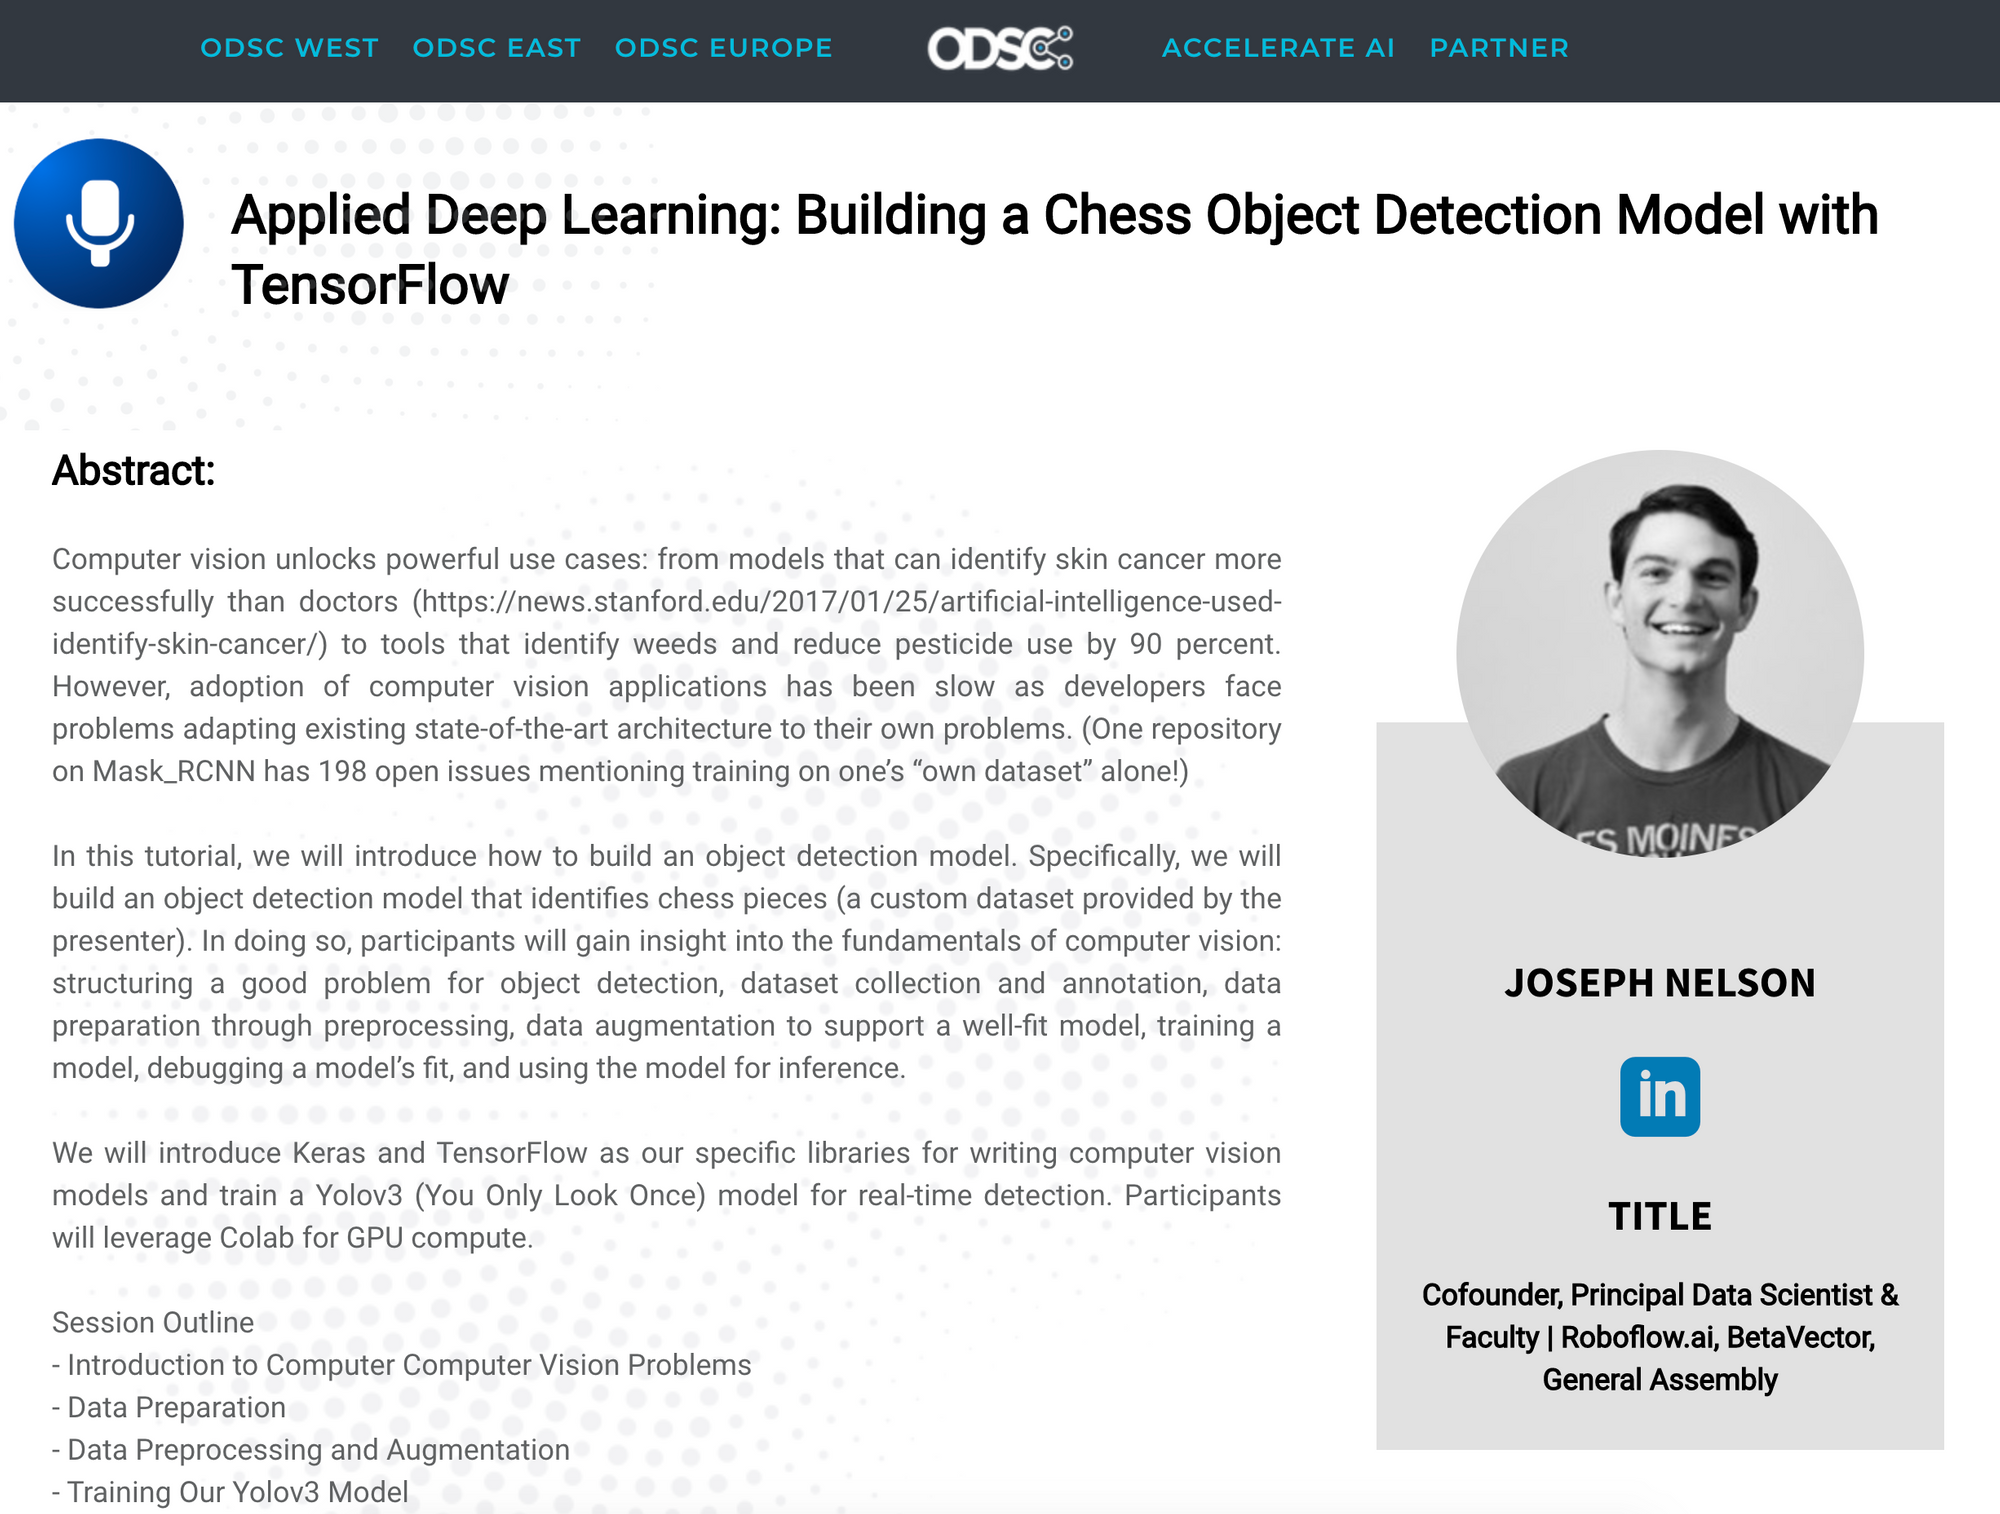 Applied Deep Learning: Building a Chess Object Detection Model with Tensorflow. Joseph Nelson, Cofounder, Principal Data Scientist & Faculty | Roboflow.ai